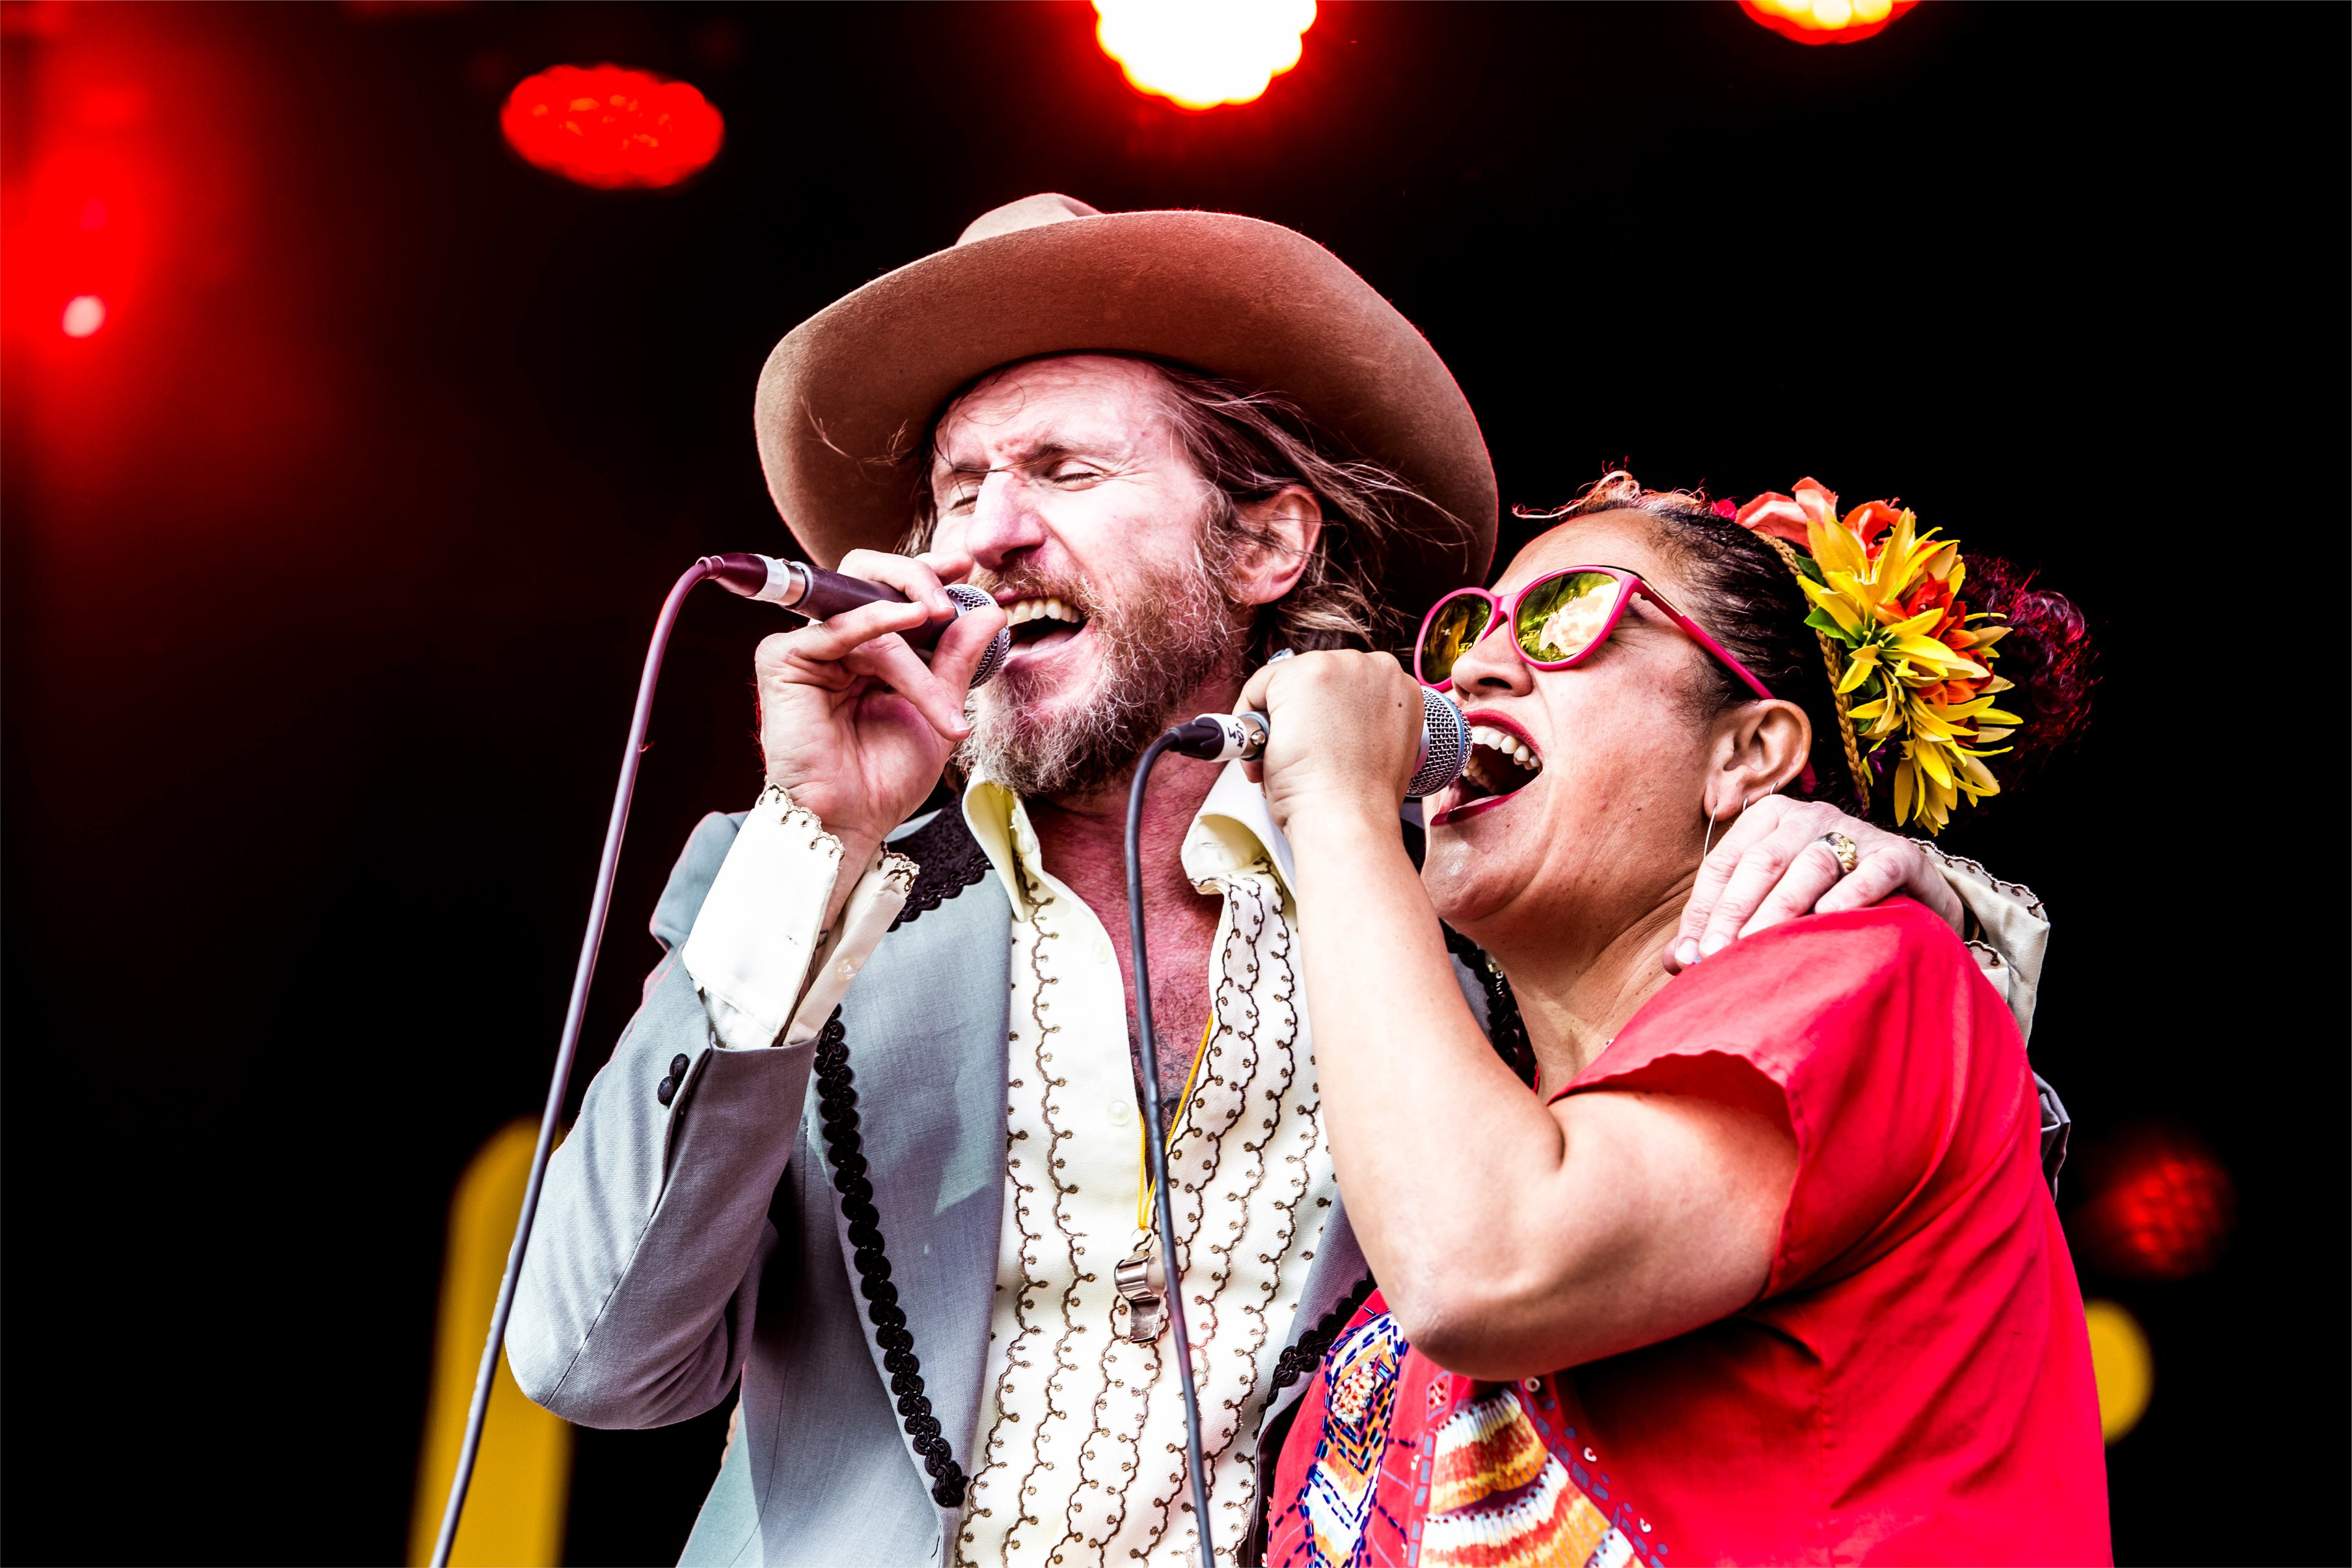 Tim Rogers and The Bamboos performing at The Lost Lands 2016